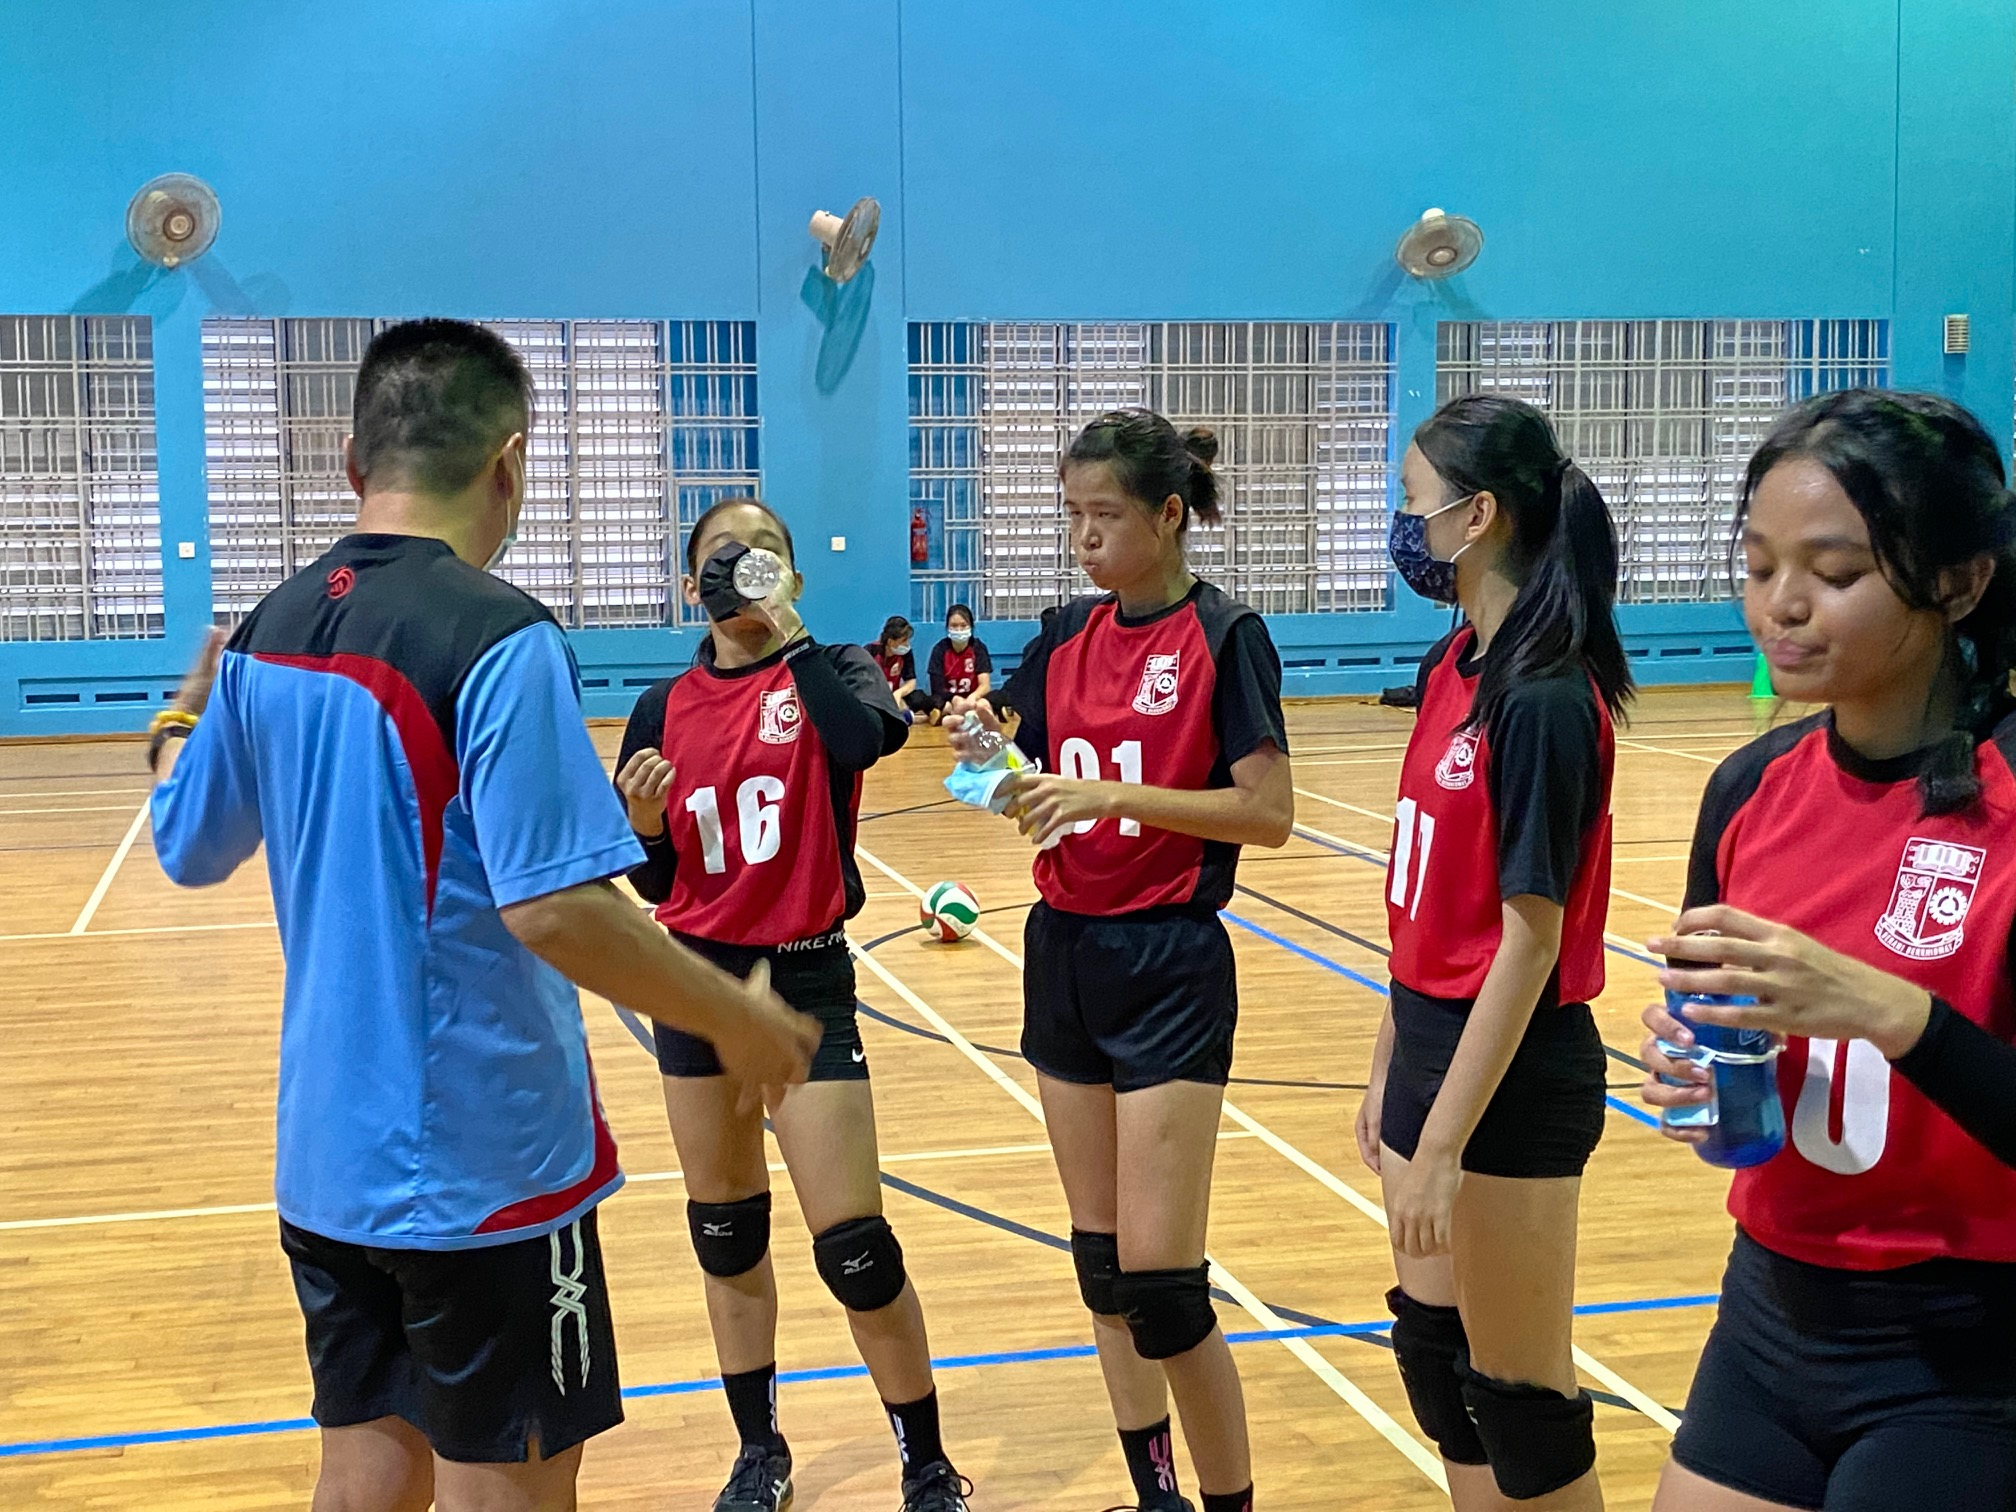 NSG South Zone B Div girls volleyball final - Queenstown (red) v Queensway (purple) 3-1